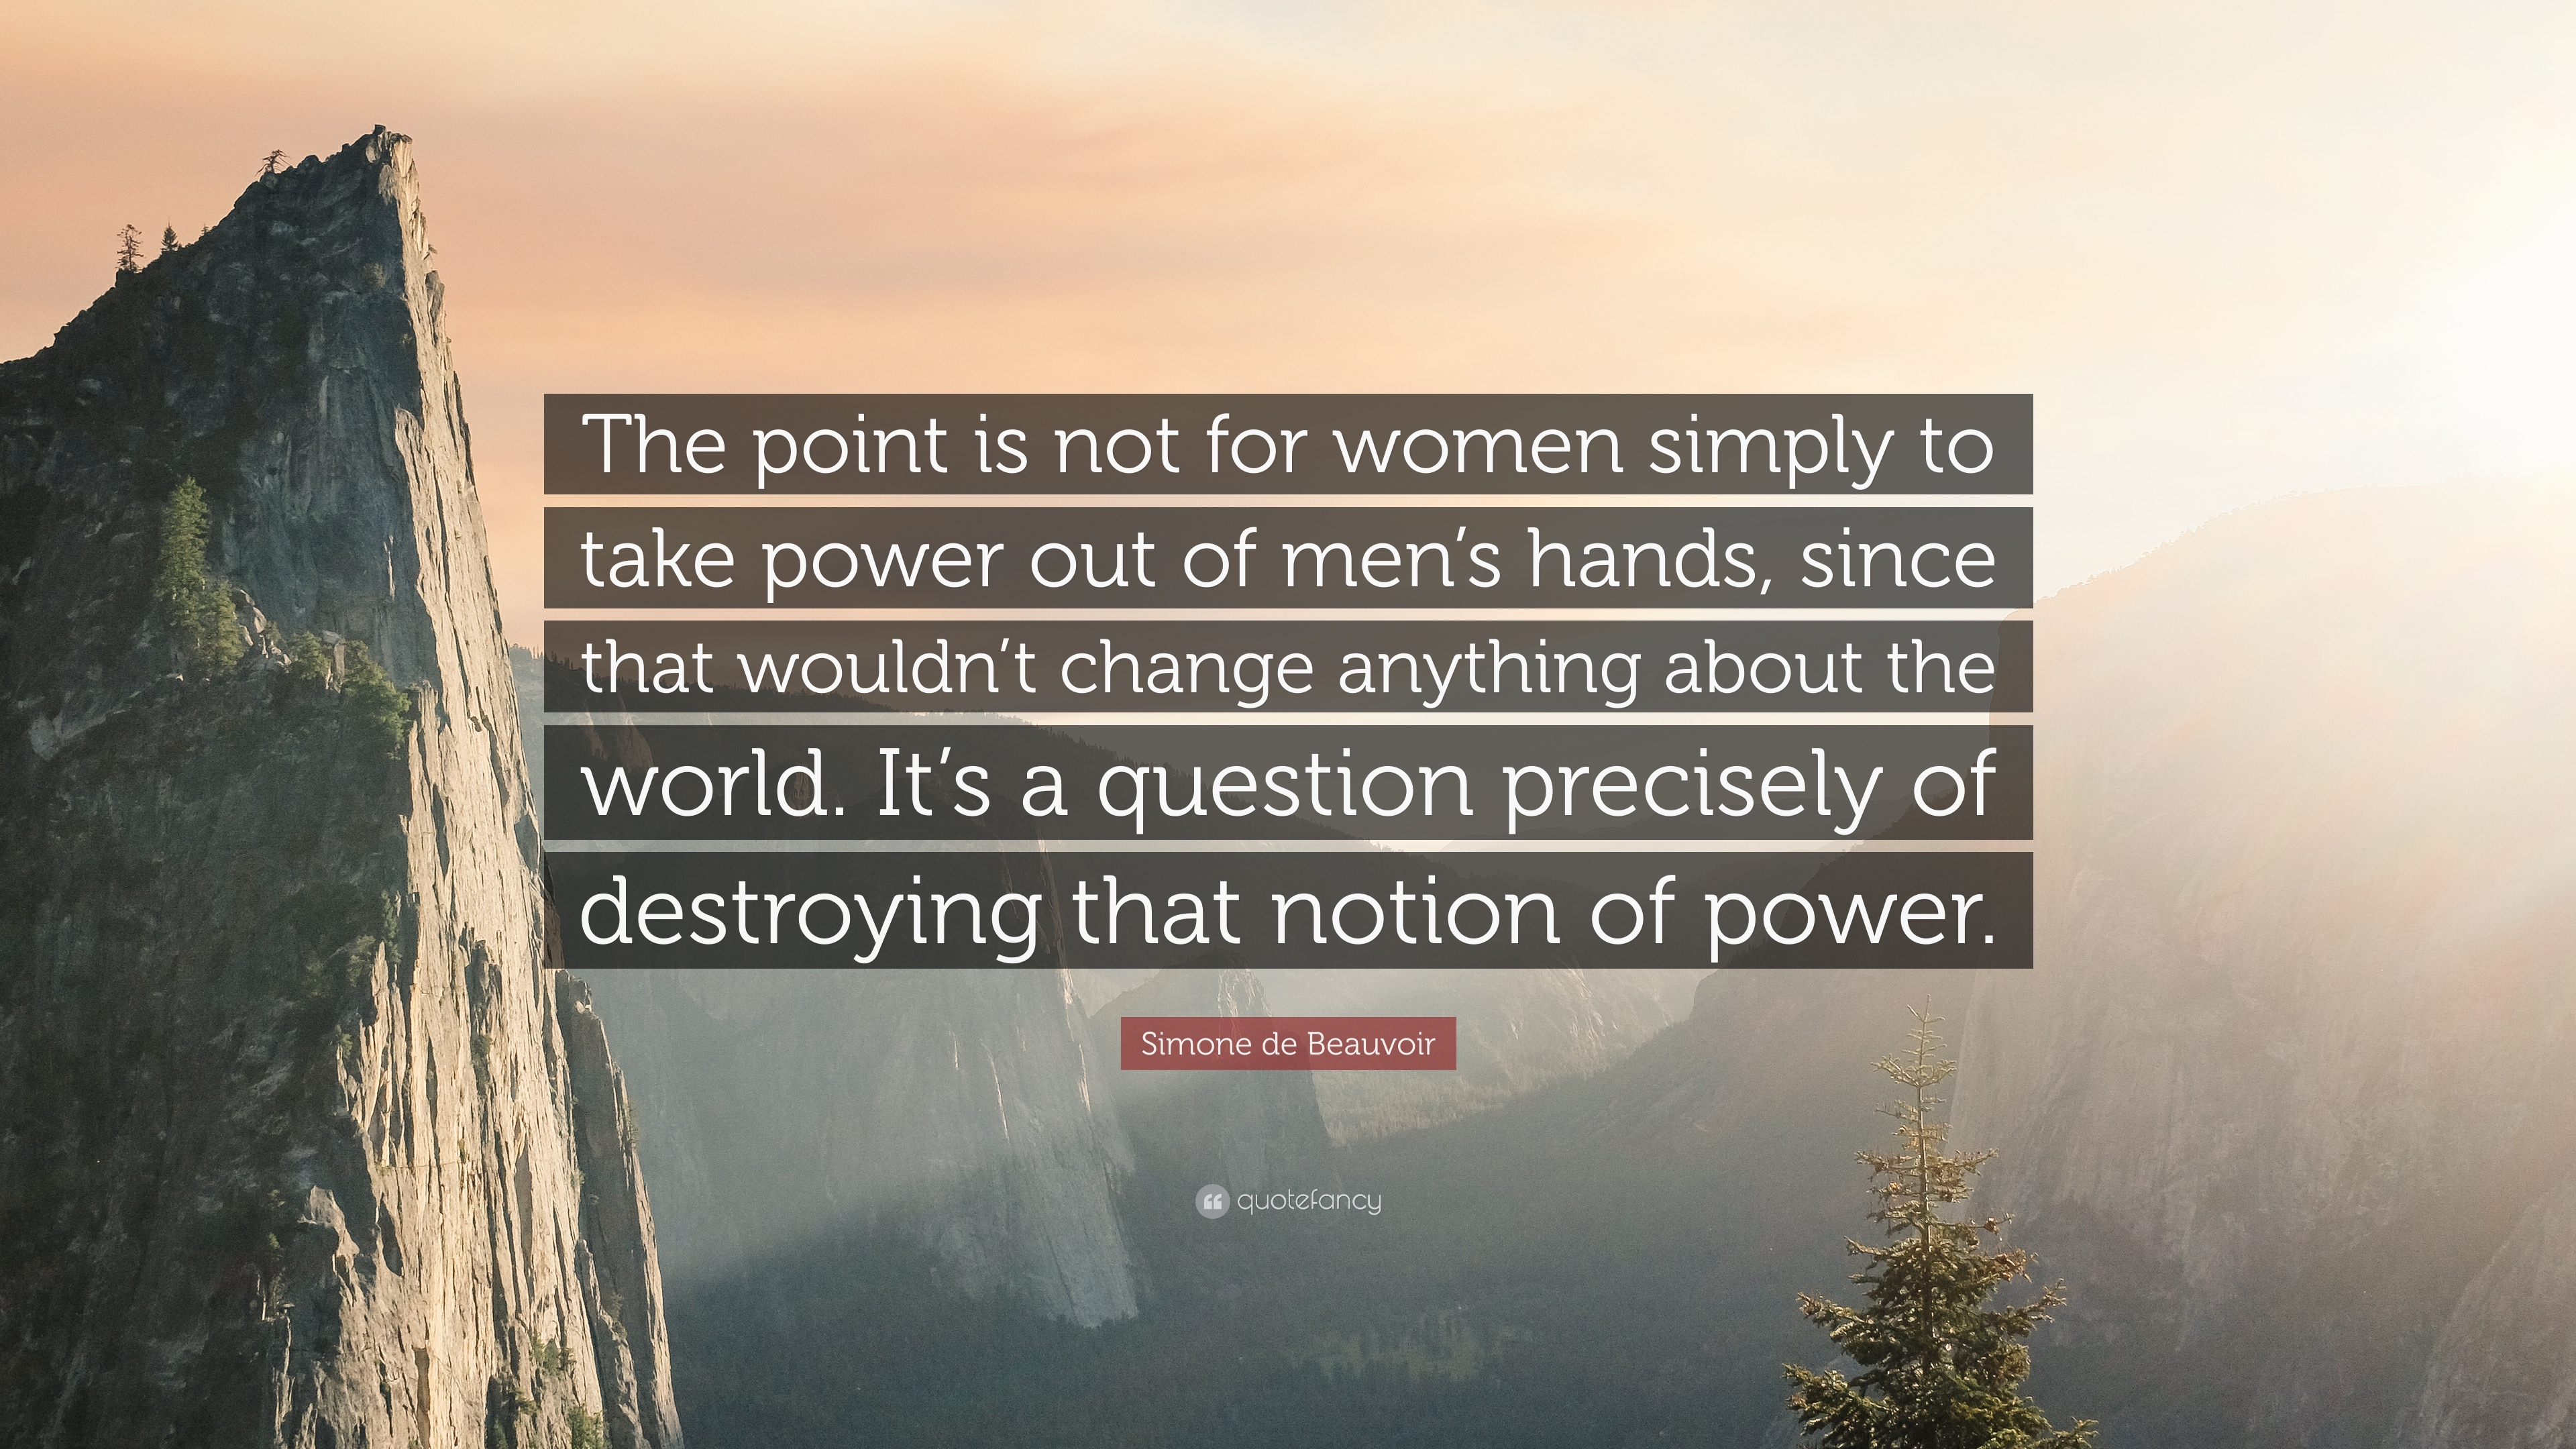 notion of power